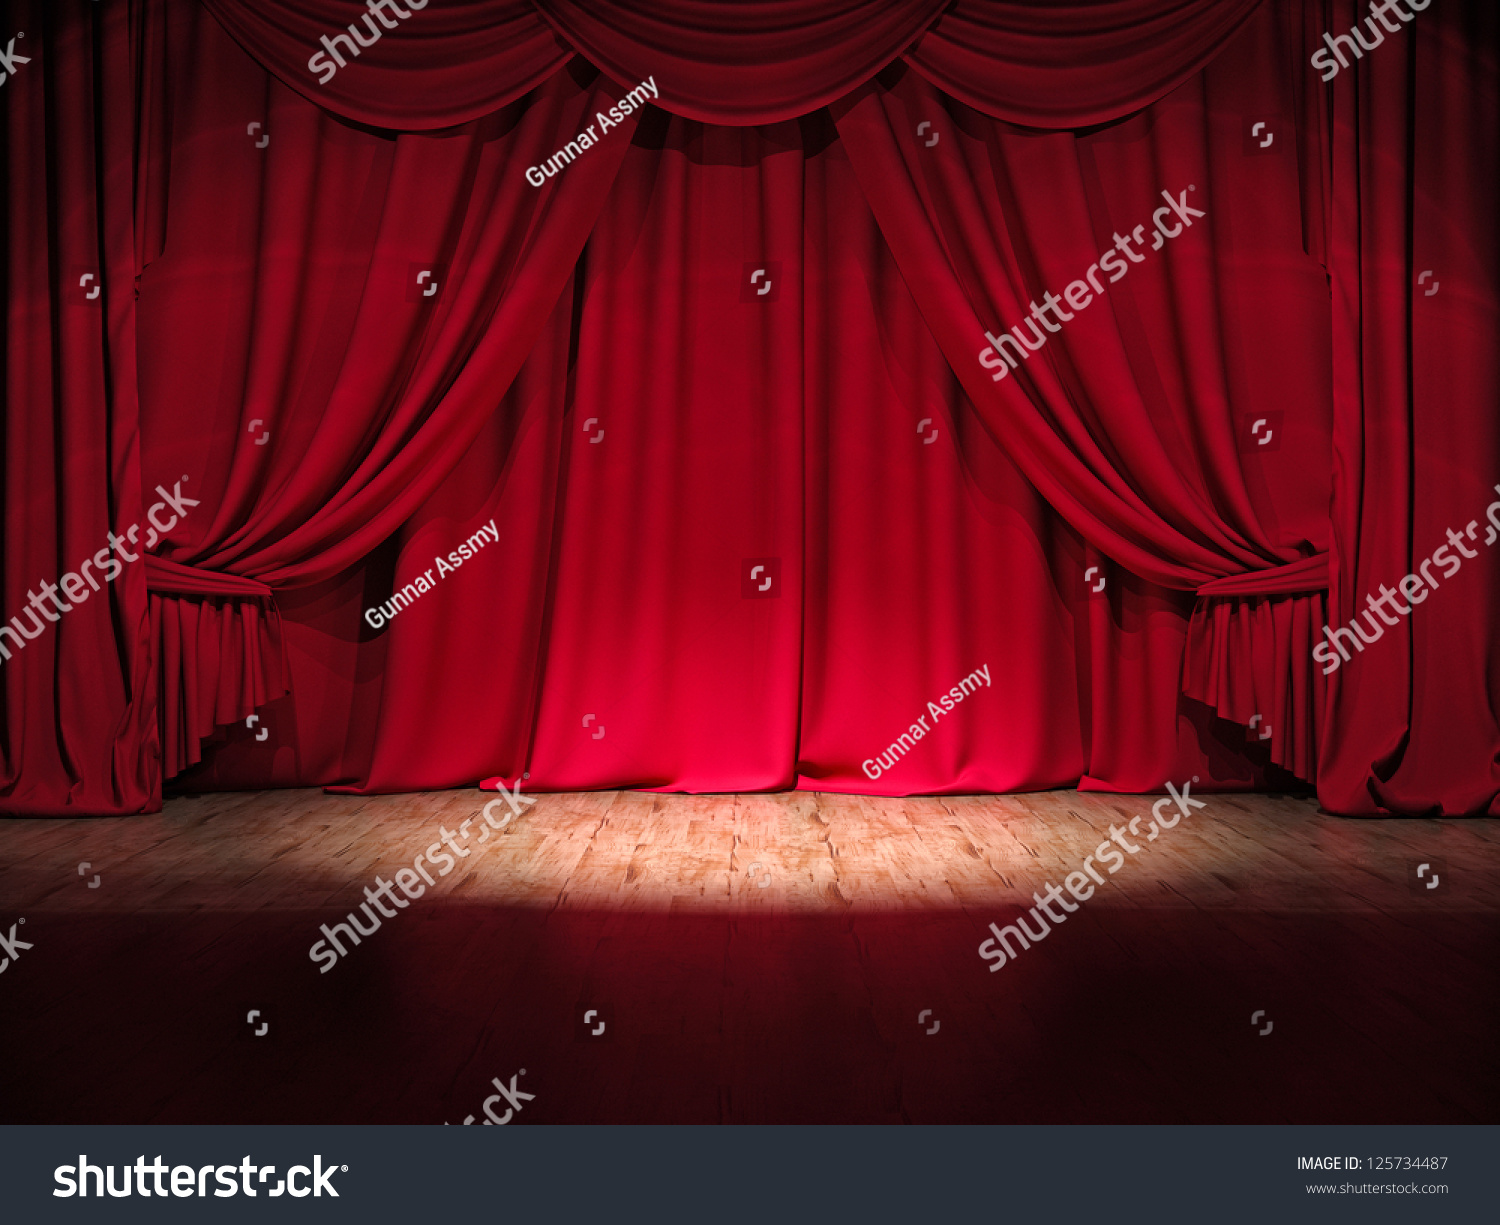 Theater Stage Red Curtains Show Spotlight Stock Illustration ...